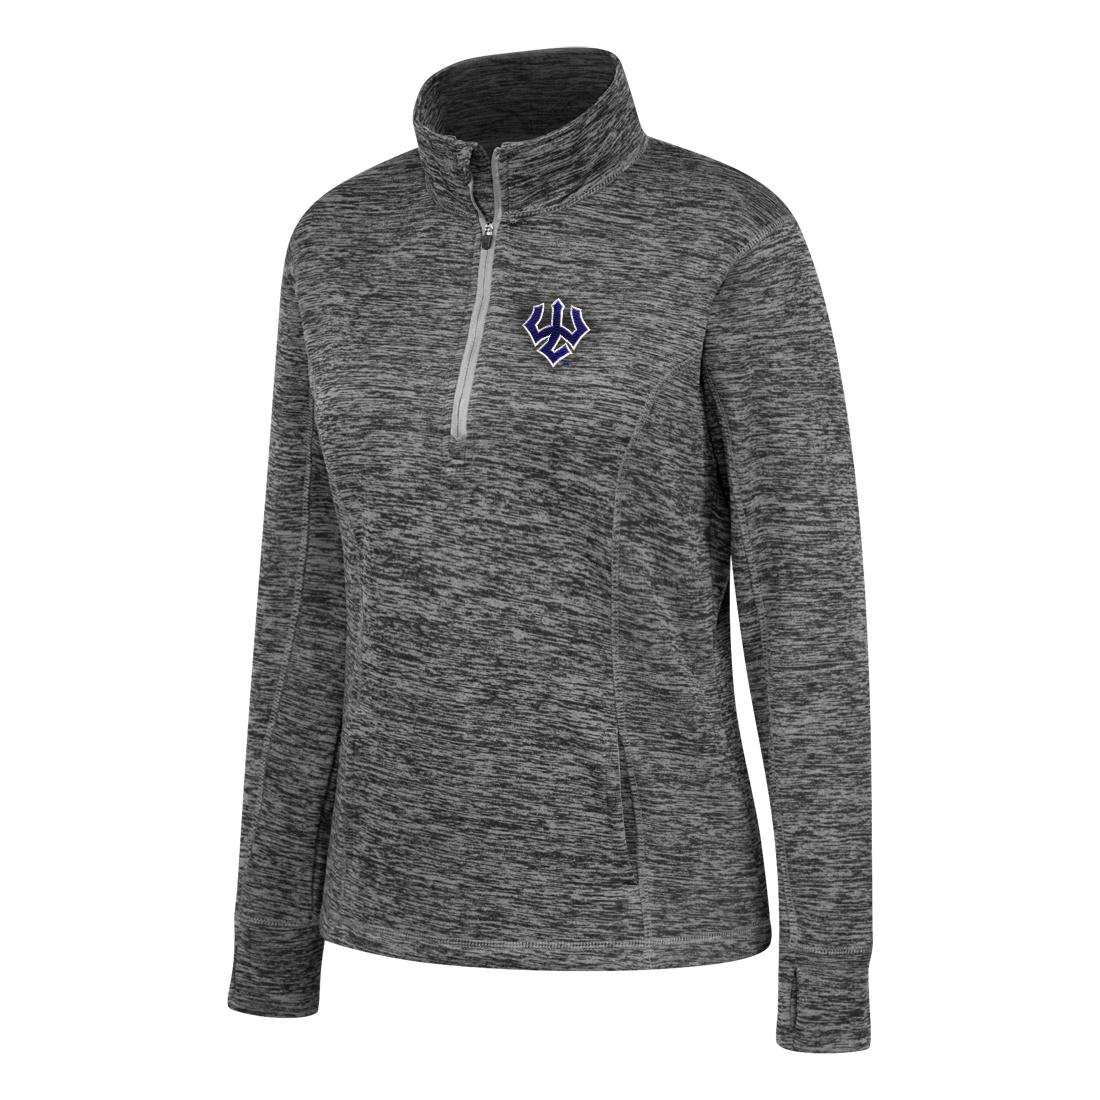 Image For Top of the World Contrast 1/4 Zip